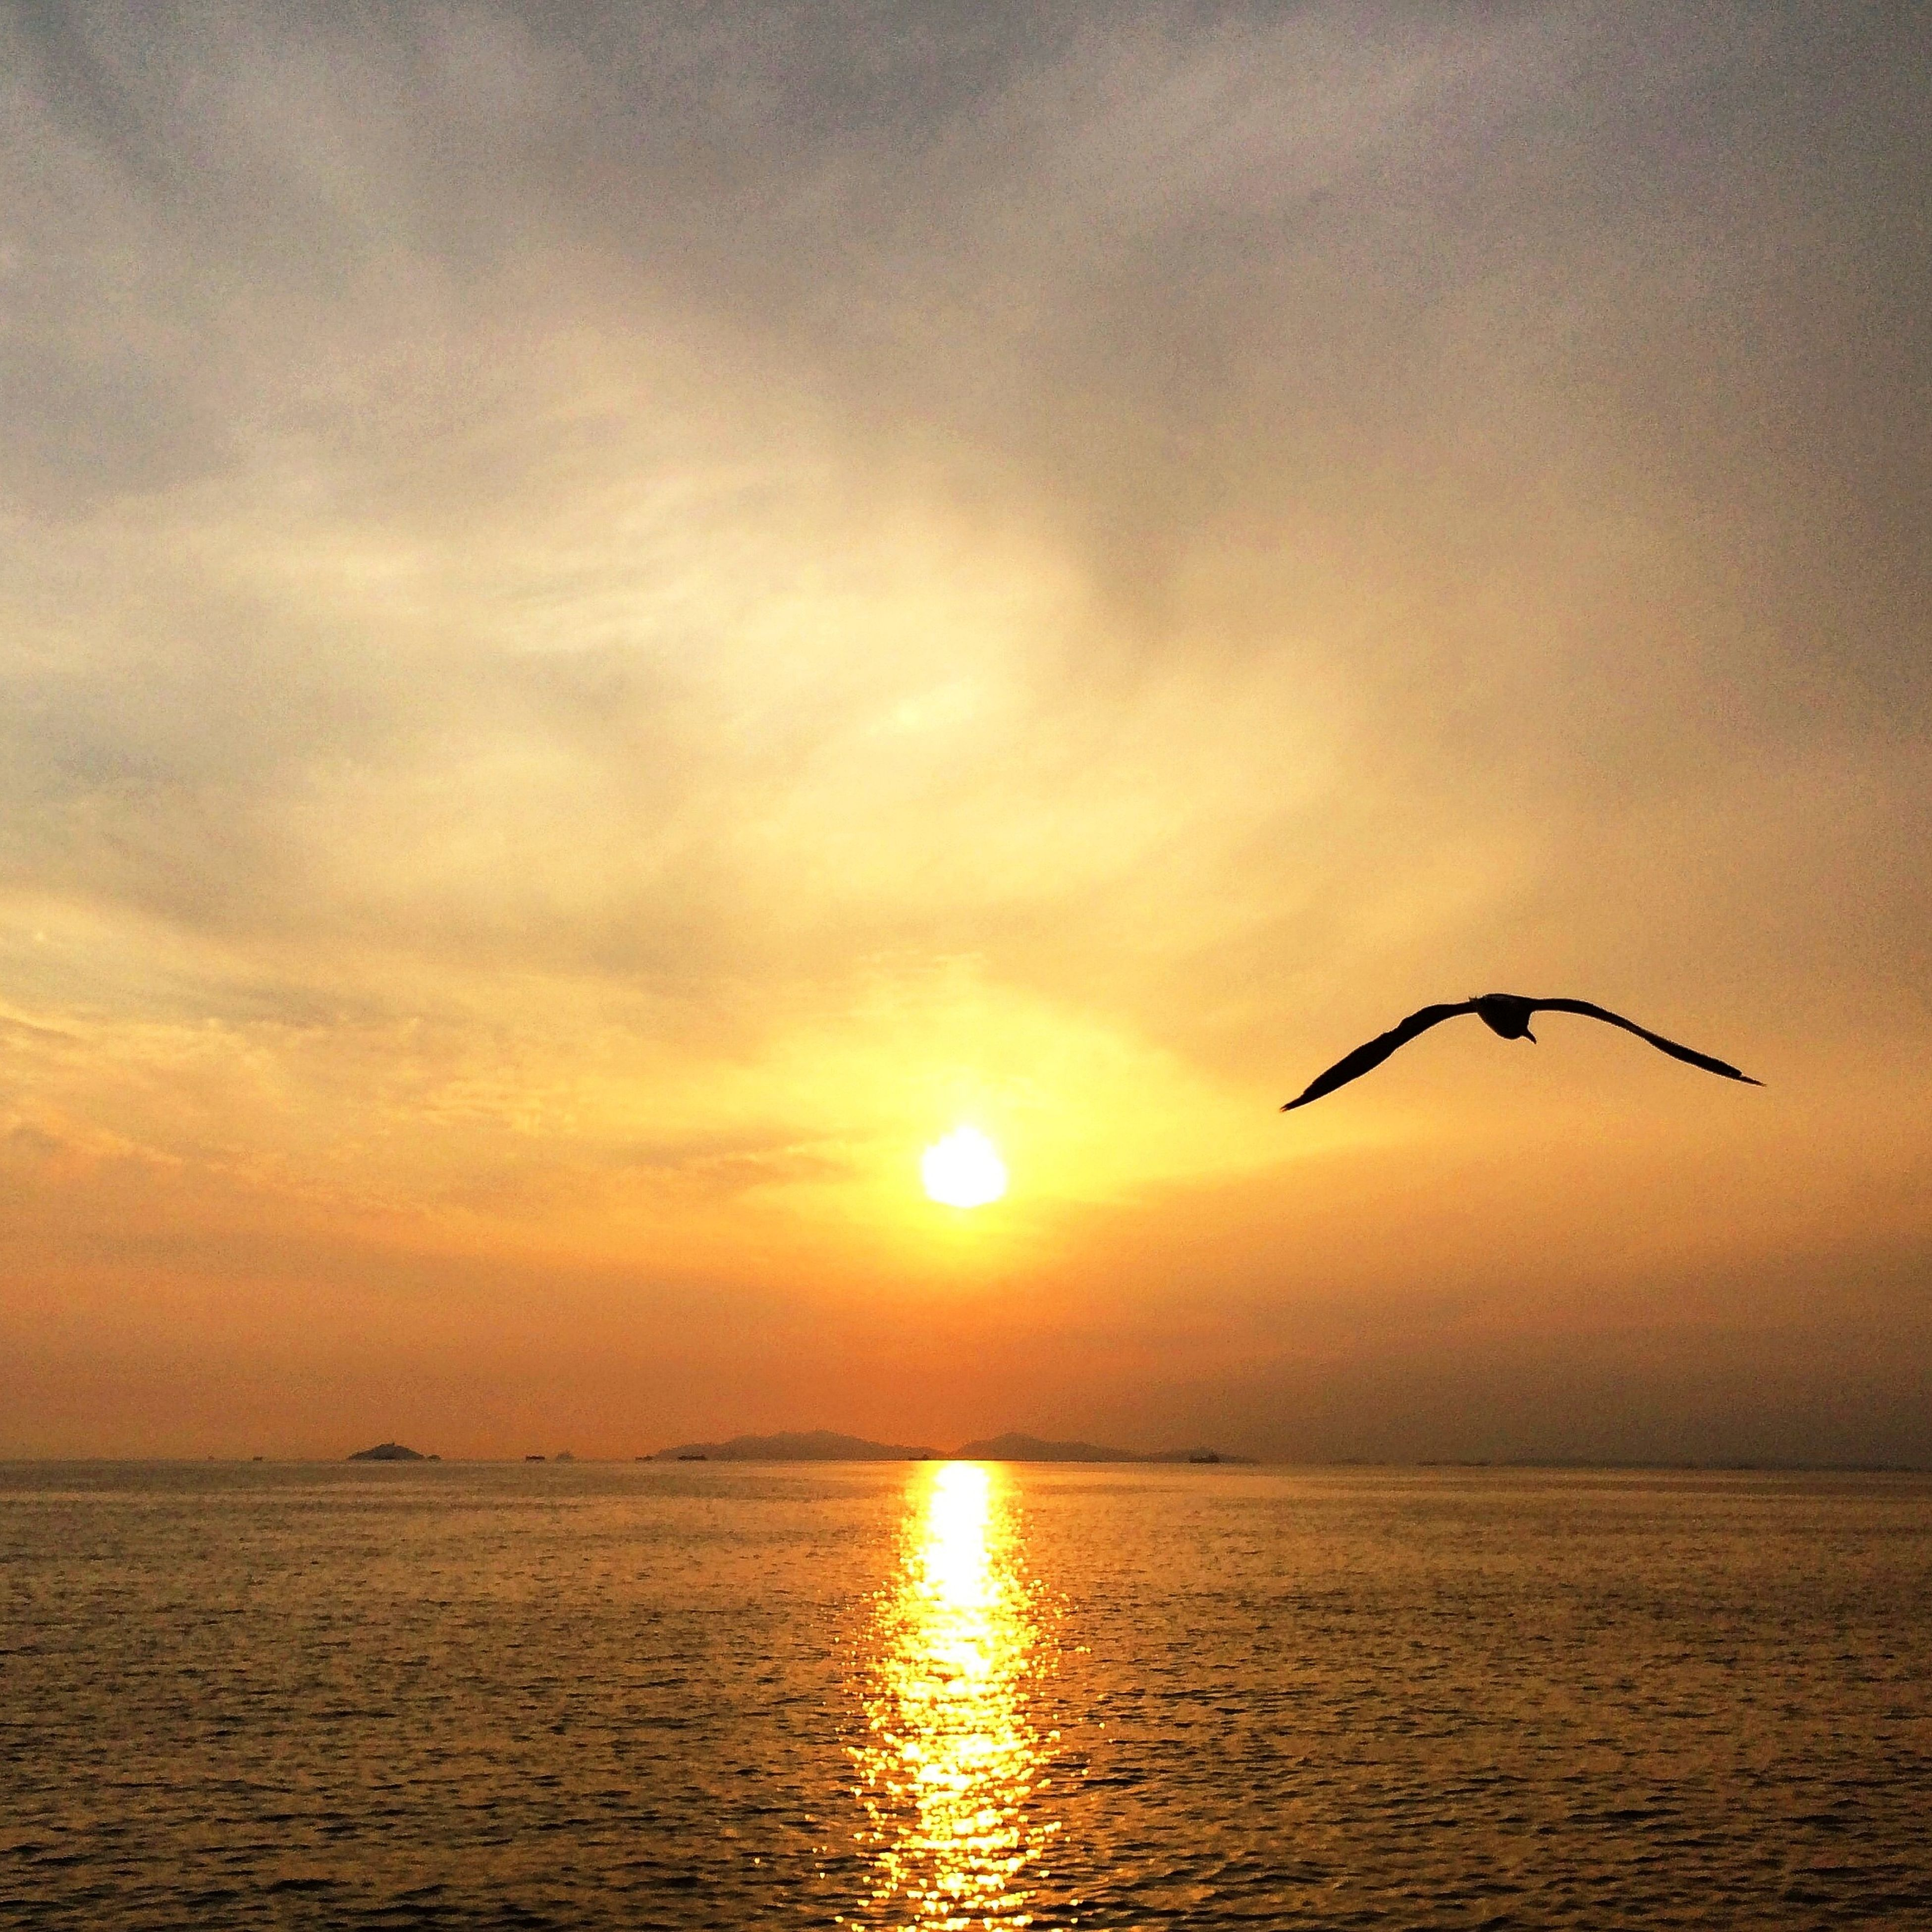 sunset, sea, water, horizon over water, sun, waterfront, orange color, scenics, sky, animal themes, flying, bird, beauty in nature, tranquil scene, tranquility, silhouette, animals in the wild, wildlife, one animal, nature